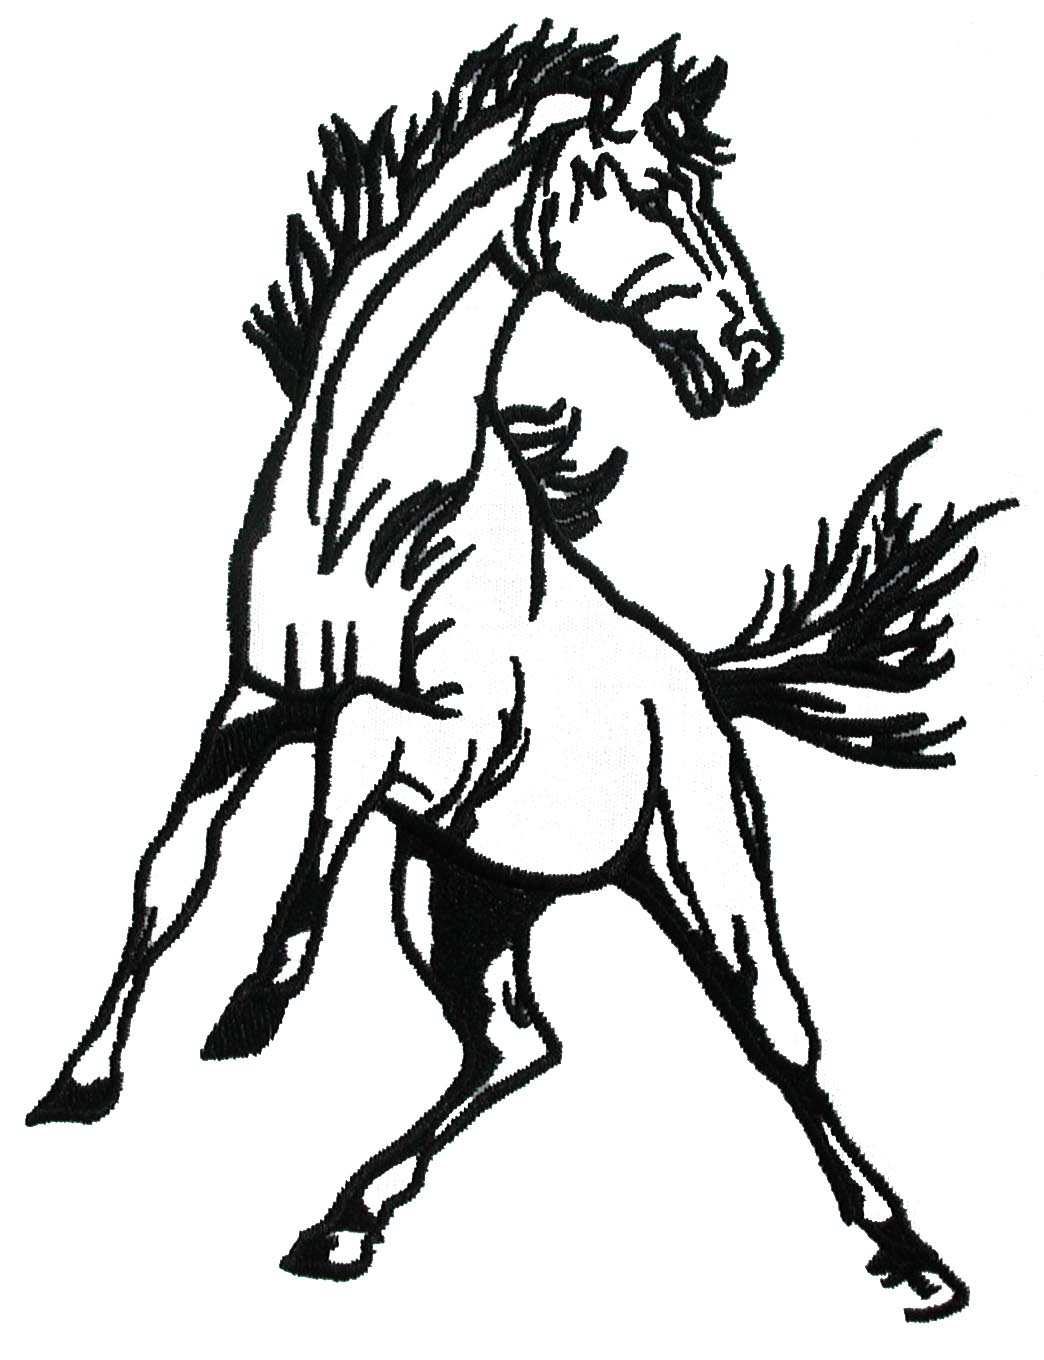 Free Mustang Mascot, Download Free Clip Art, Free Clip Art.